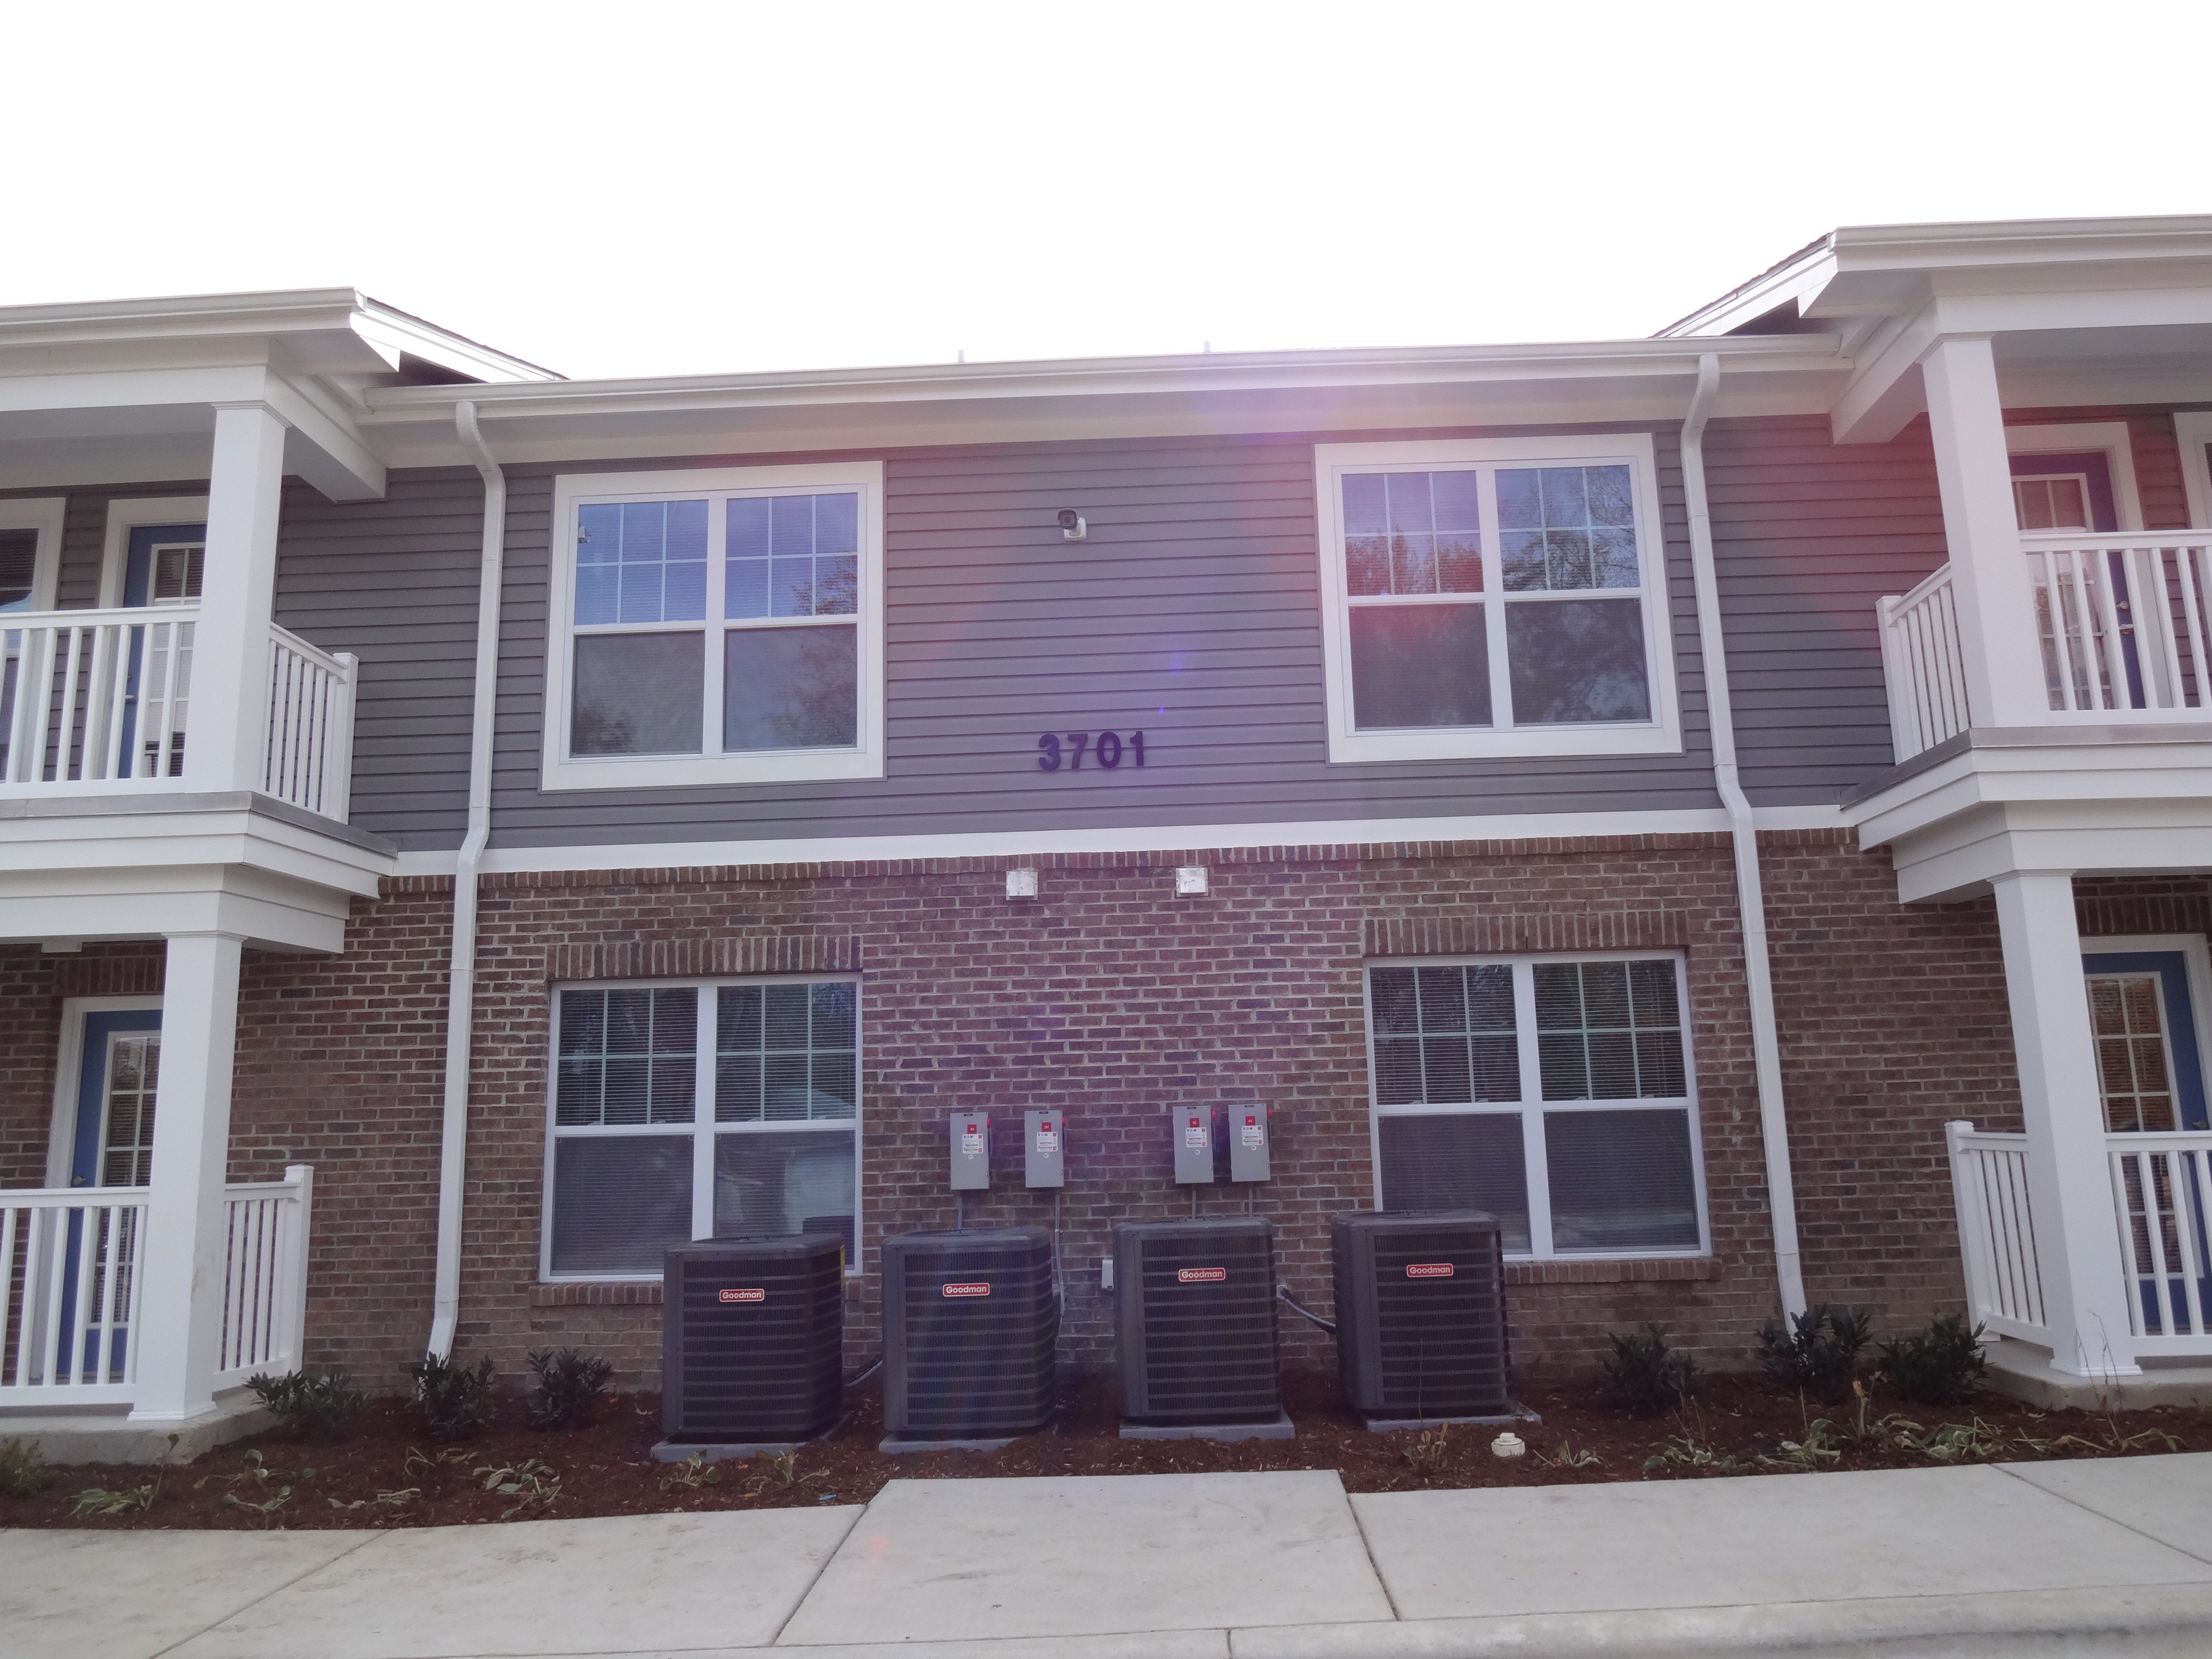 Best 1 Bedroom Apartments Greensboro Nc Studio Near Uncg Empire Crossings Apartments Quixspot Com With Pictures